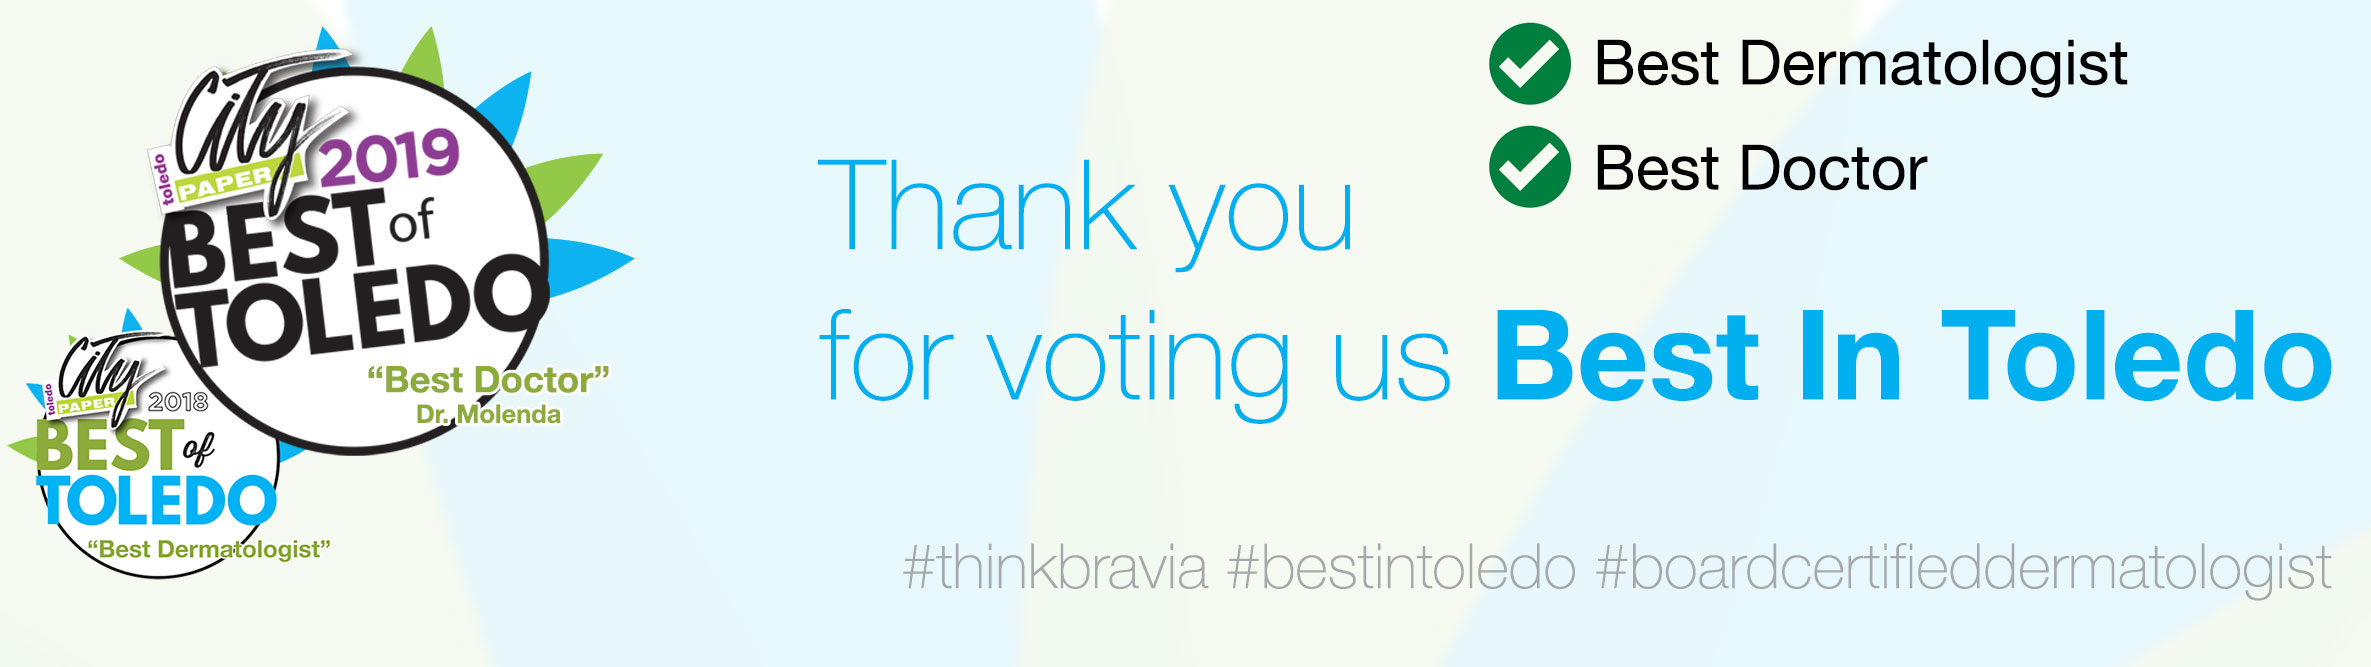 Bravia Dermatology - Voted Best Dermatologist in Toledo, Dr. Molenda Voted Best Doctor in Toledo